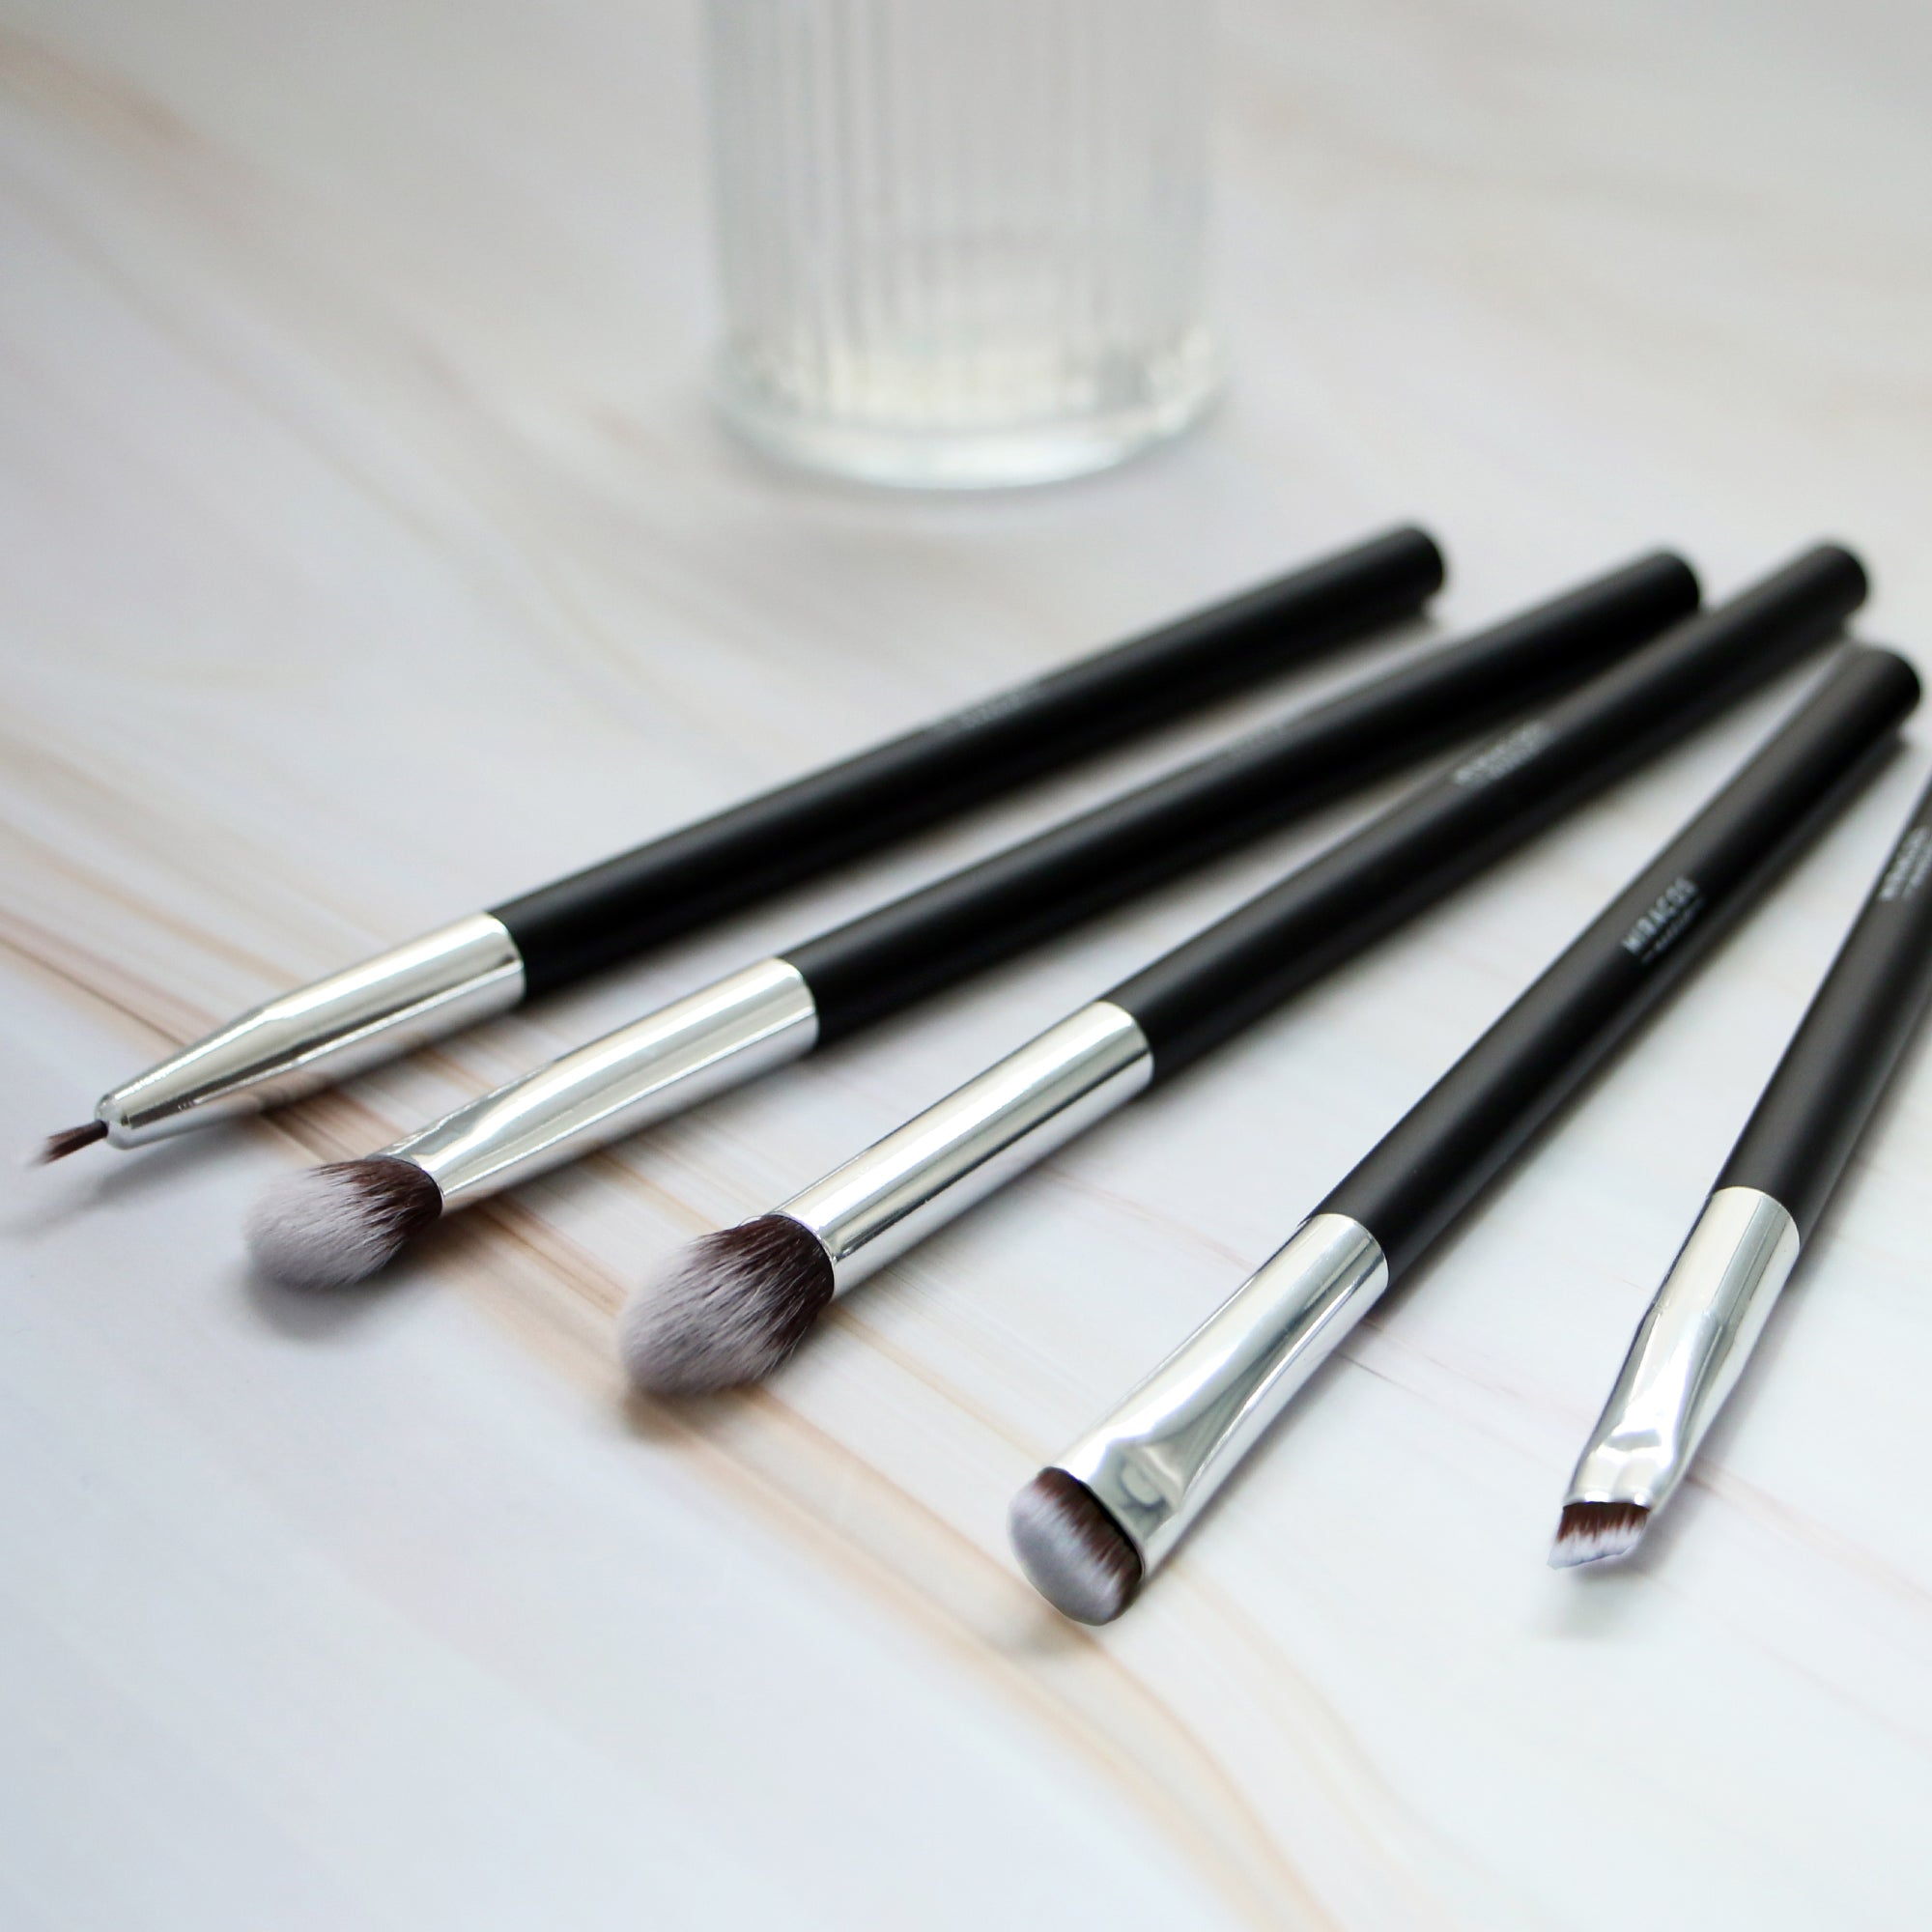 5 Piece Eye Makeup Brush Set